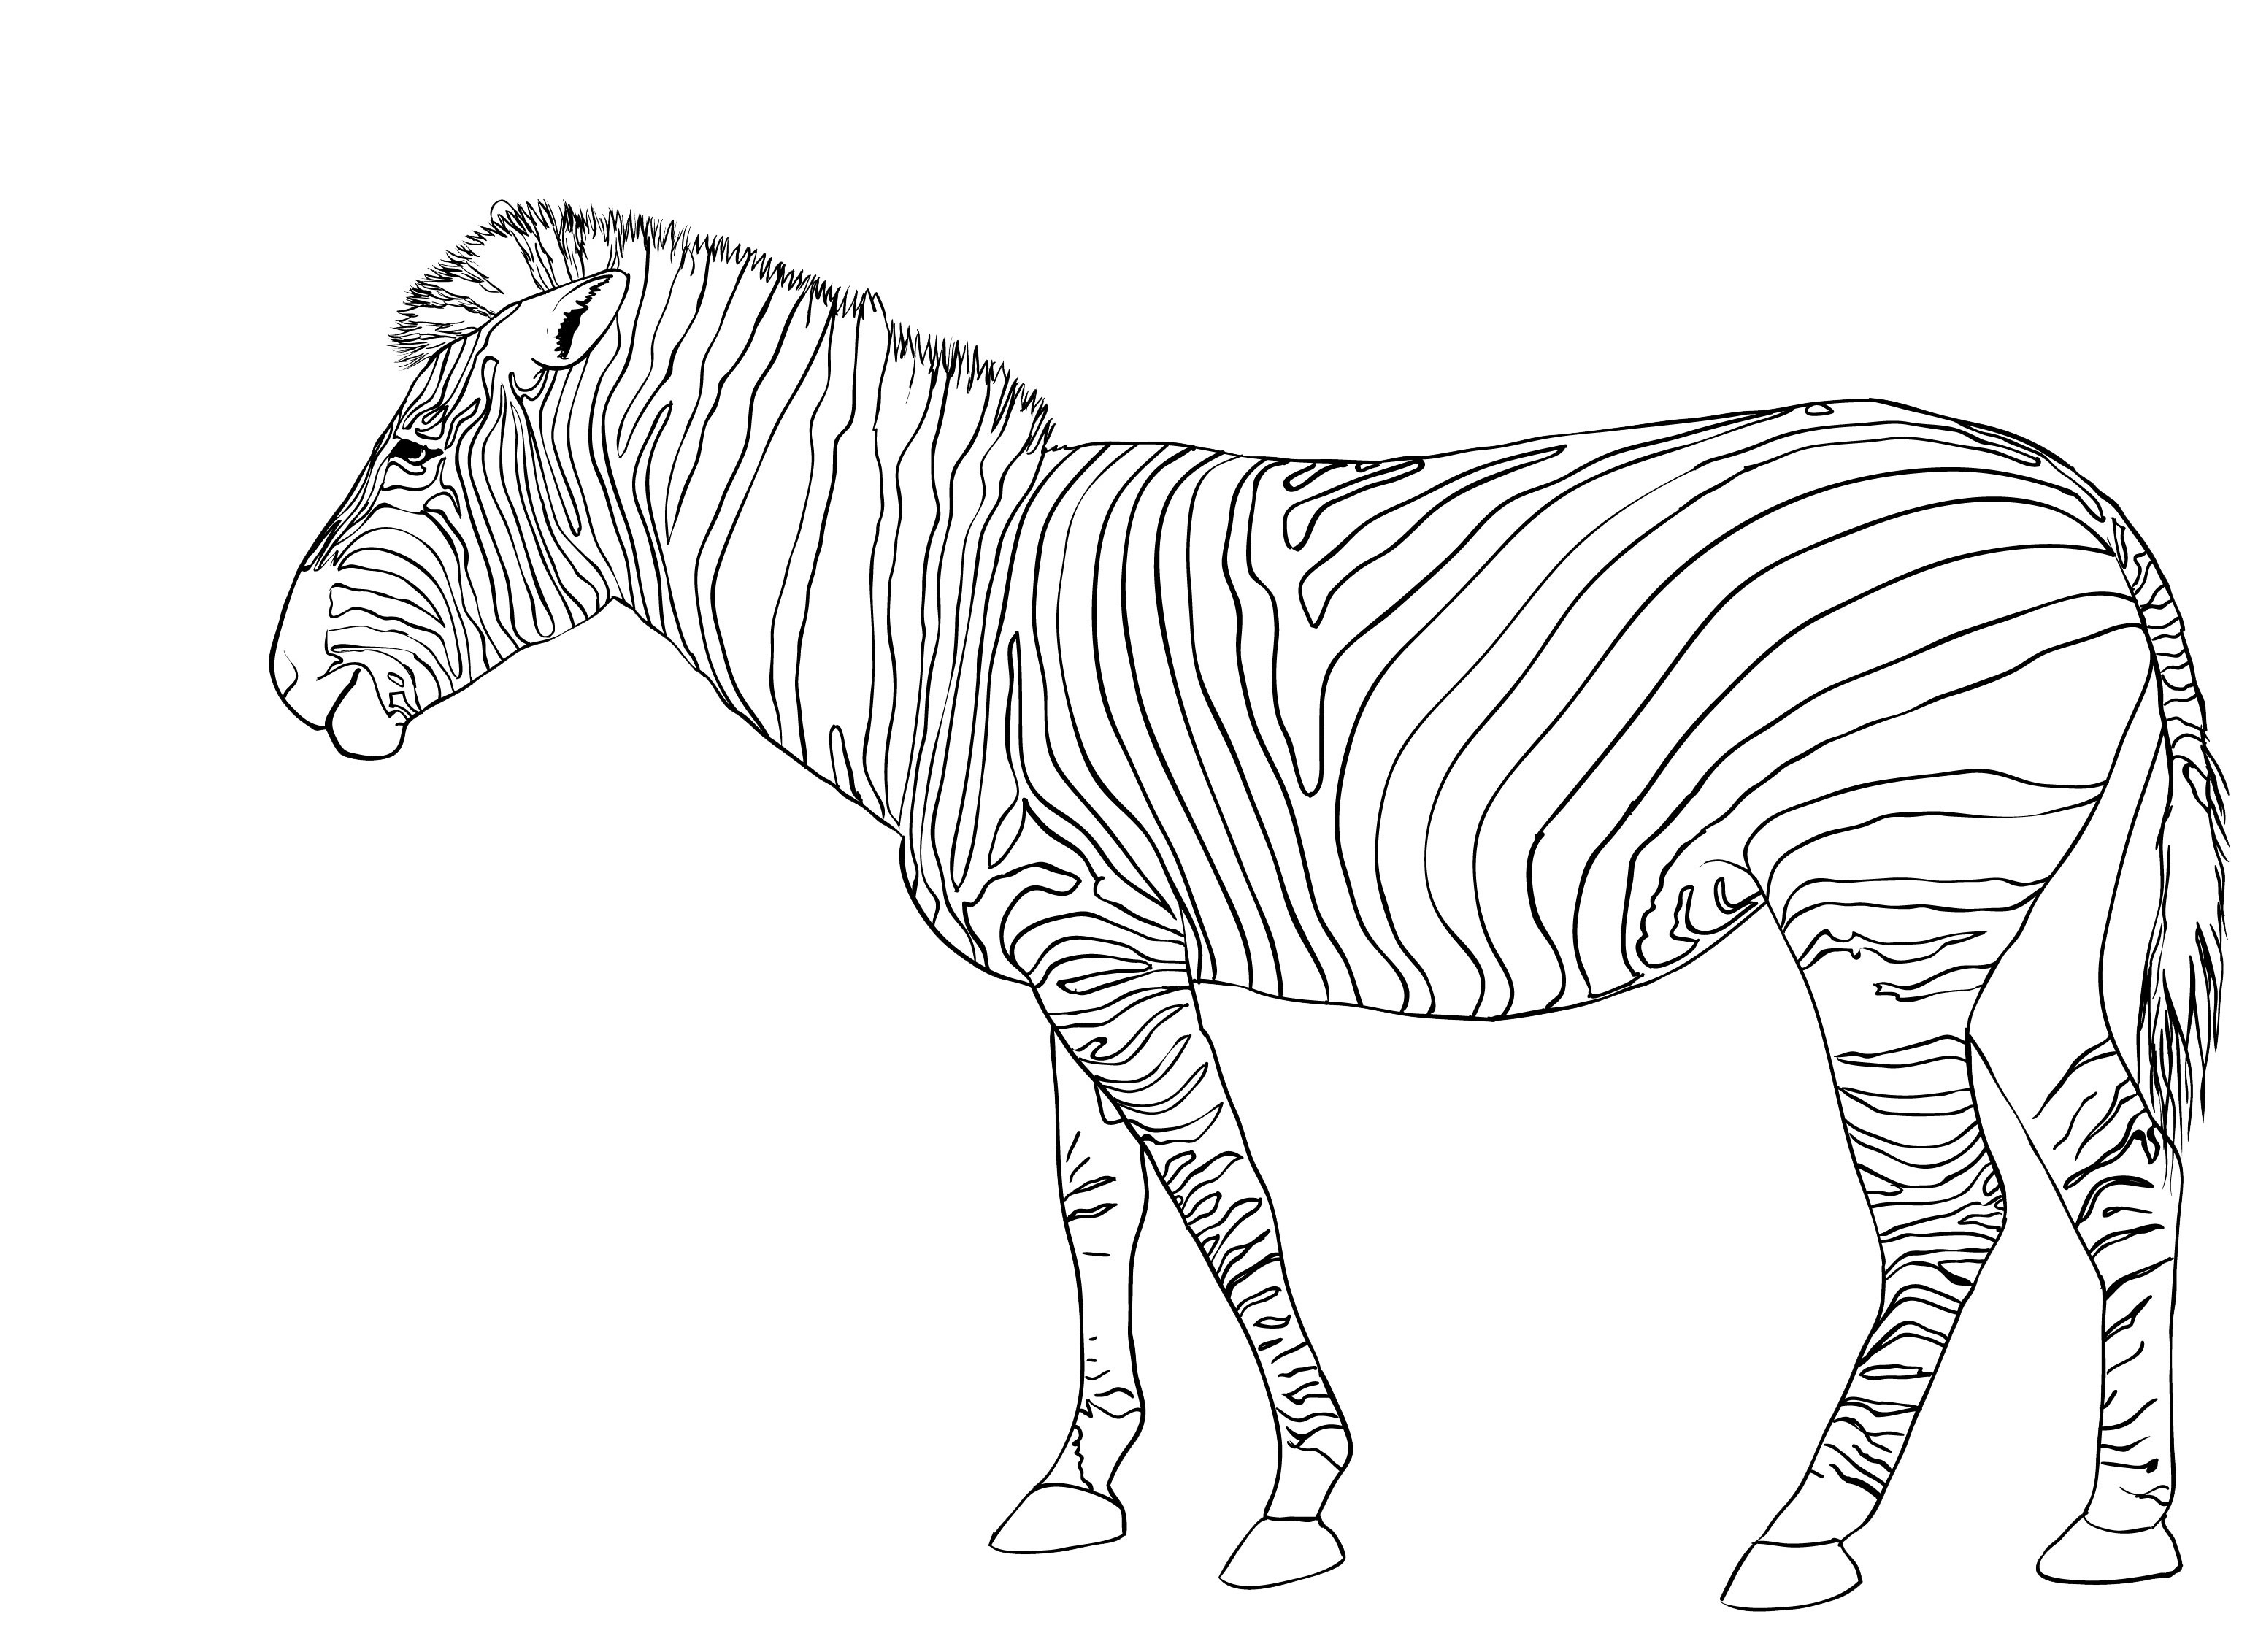 zebra colouring pages to print zebra coloring pages free printable kids coloring pages pages zebra print to colouring